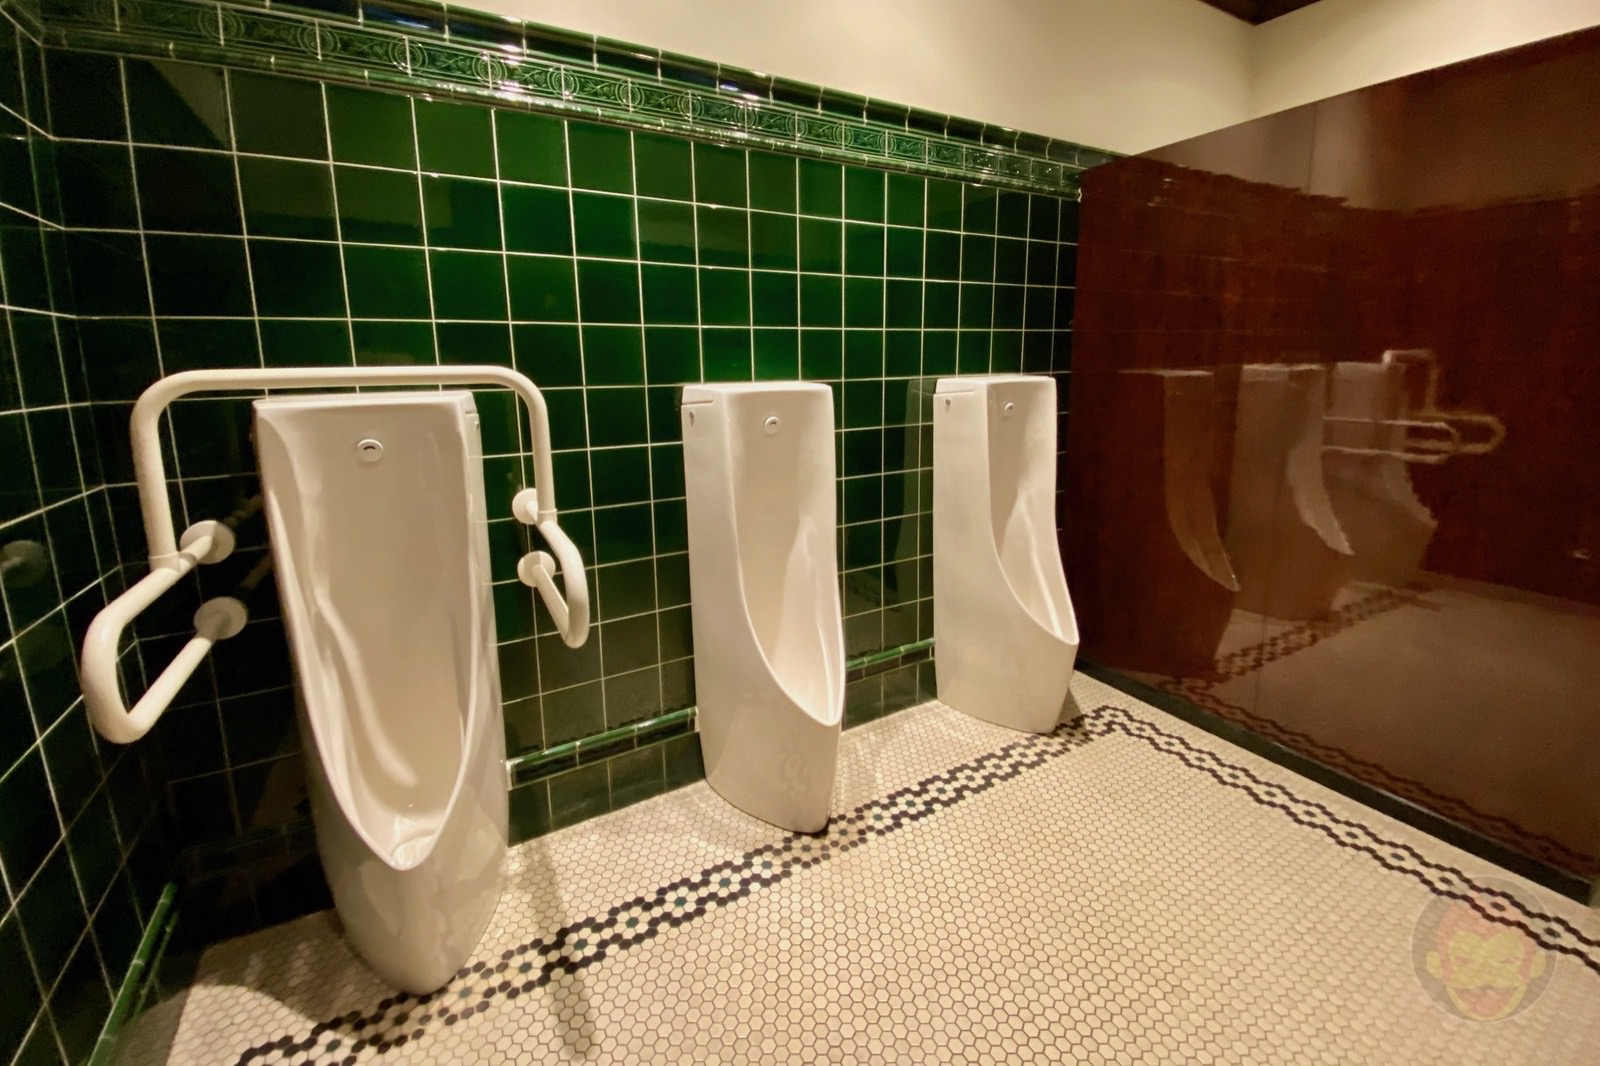 Photo of mens toilet 01